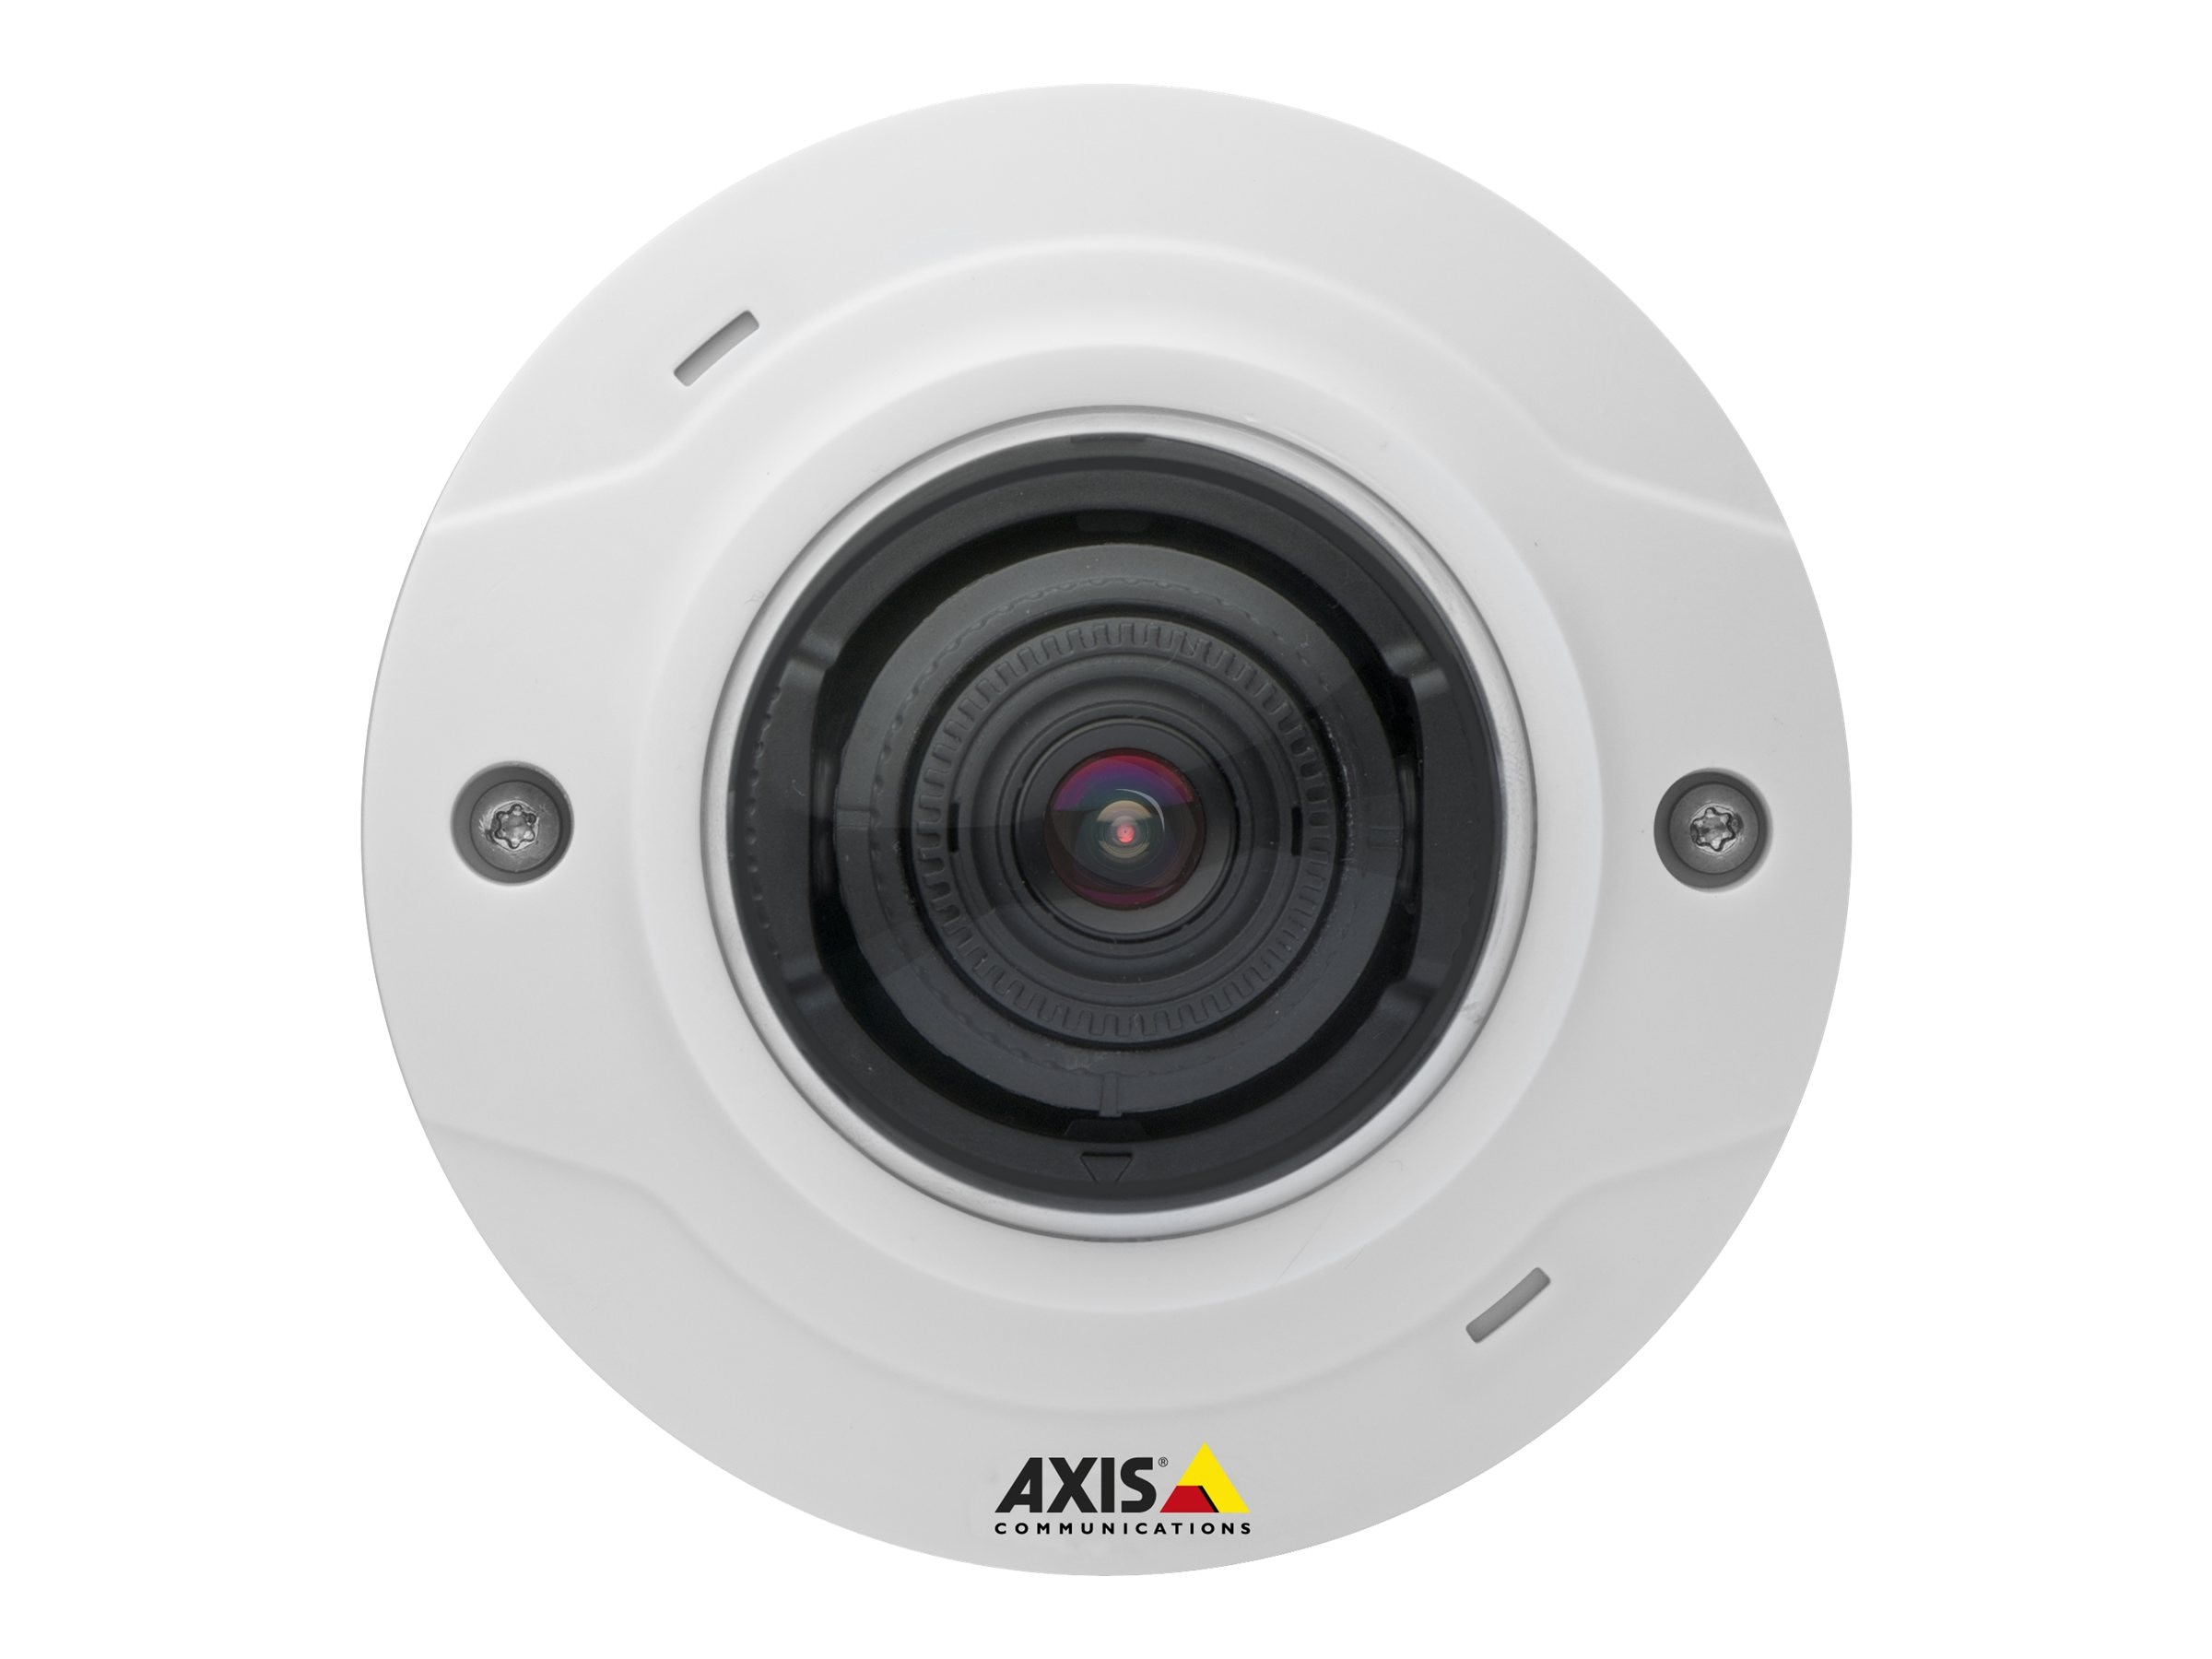 Axis M3004-V Network Camera, Compact Indoor Mini Dome, 0516-001, 14634645, Cameras - Security